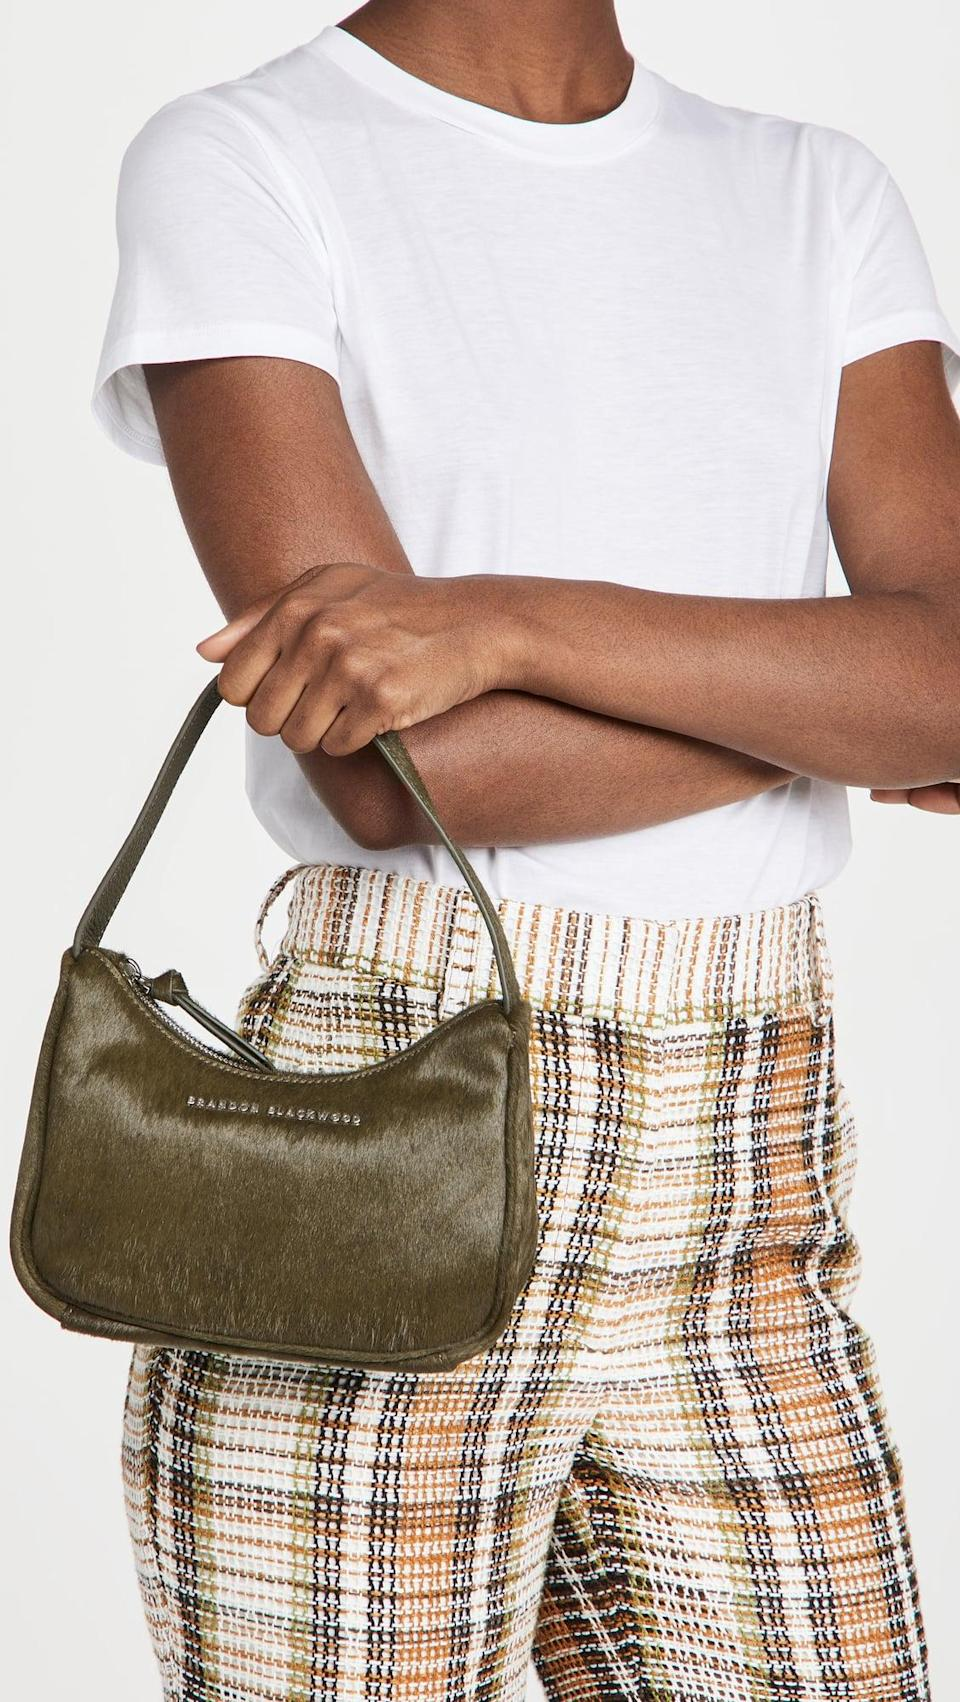 <p>This <span>Brandon Blackwood The Syl Bag</span> ($116, originally $165) looks like a classic mini bag, but with a twist. The calfhair adds something extra, and it's so cool.</p>